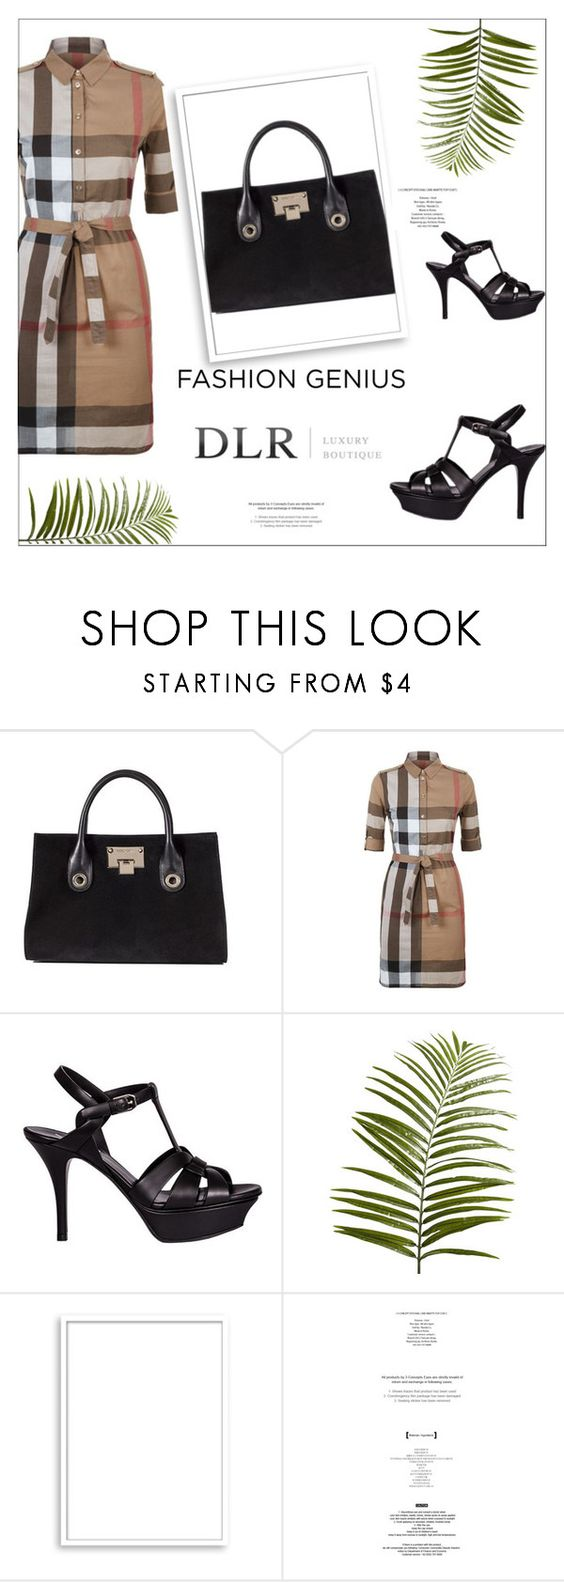 """Love is fun. DLR"" by amazing-724 ❤ liked on Polyvore featuring Jimmy Choo, Burberry, Yves Saint Laurent, Pier 1 Imports and Bomedo"